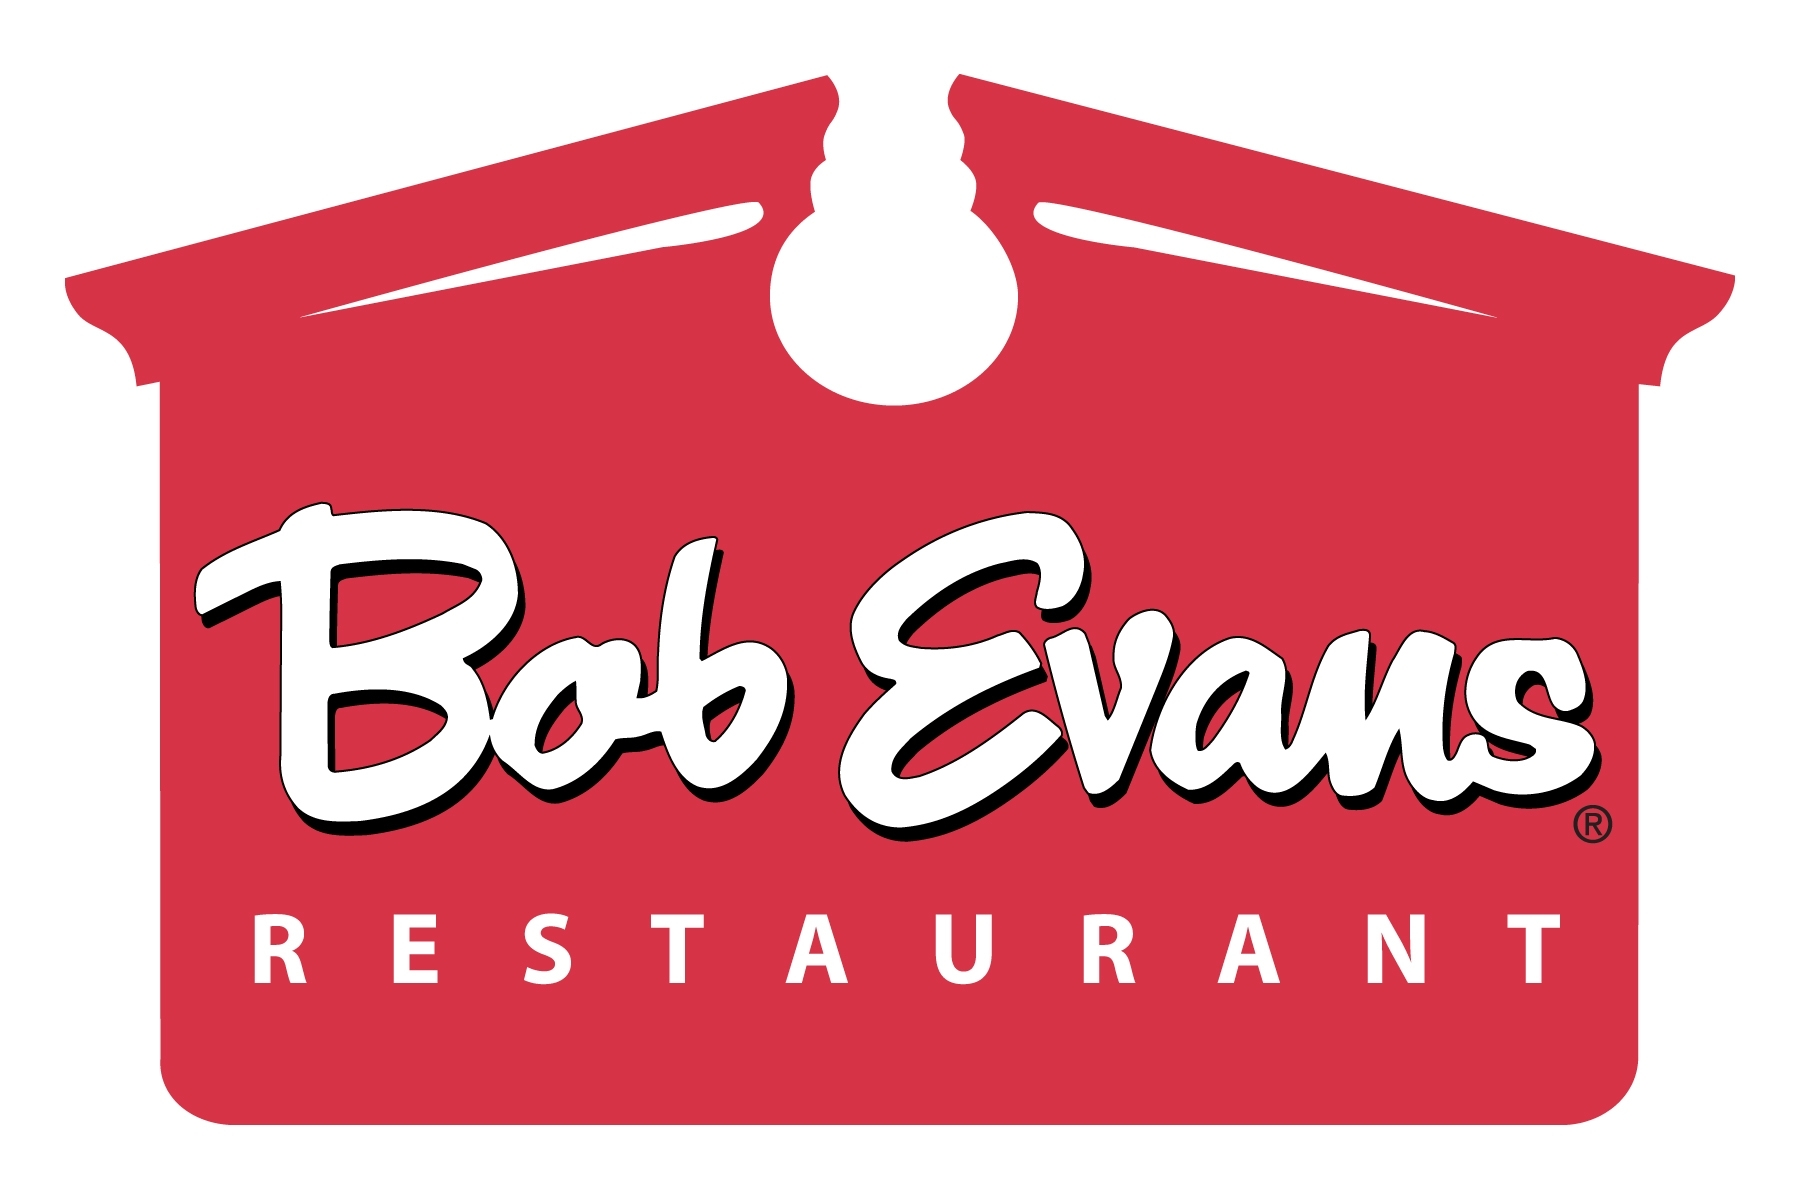 Bob Evans Restaurant To Close 27 Locations